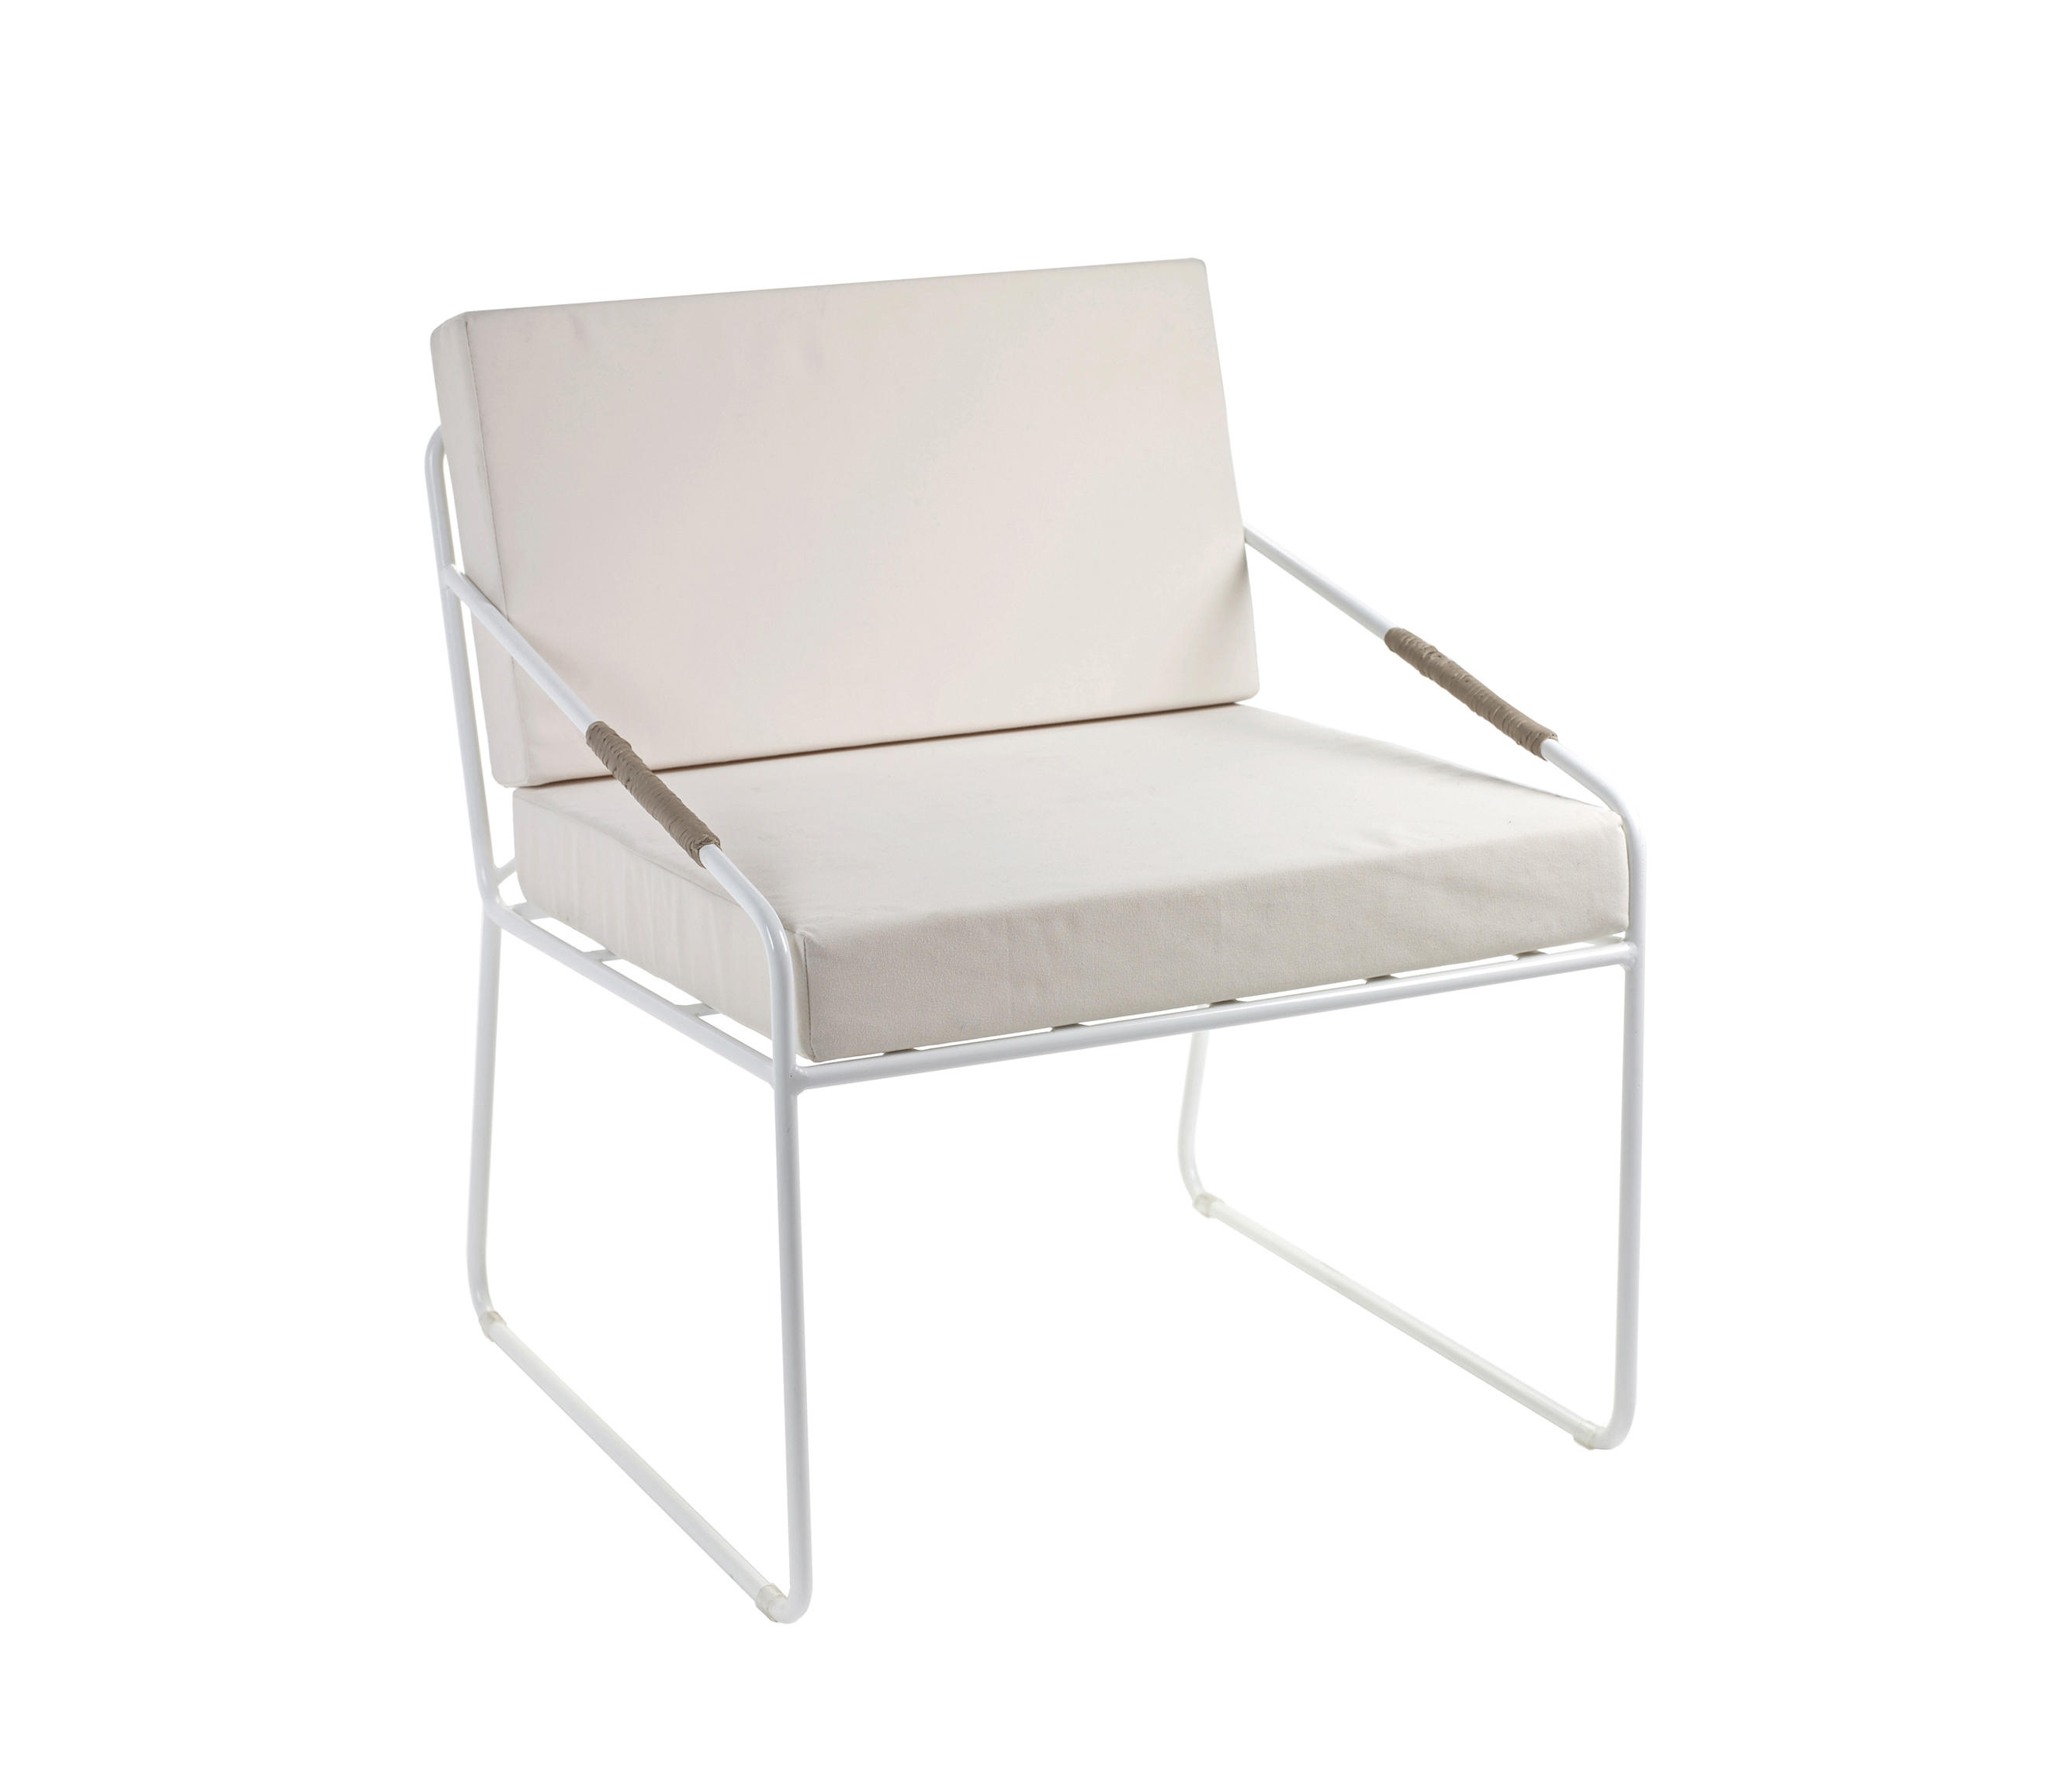 Colonel Seat And Cushion White By Serax | Garden Armchairs ...